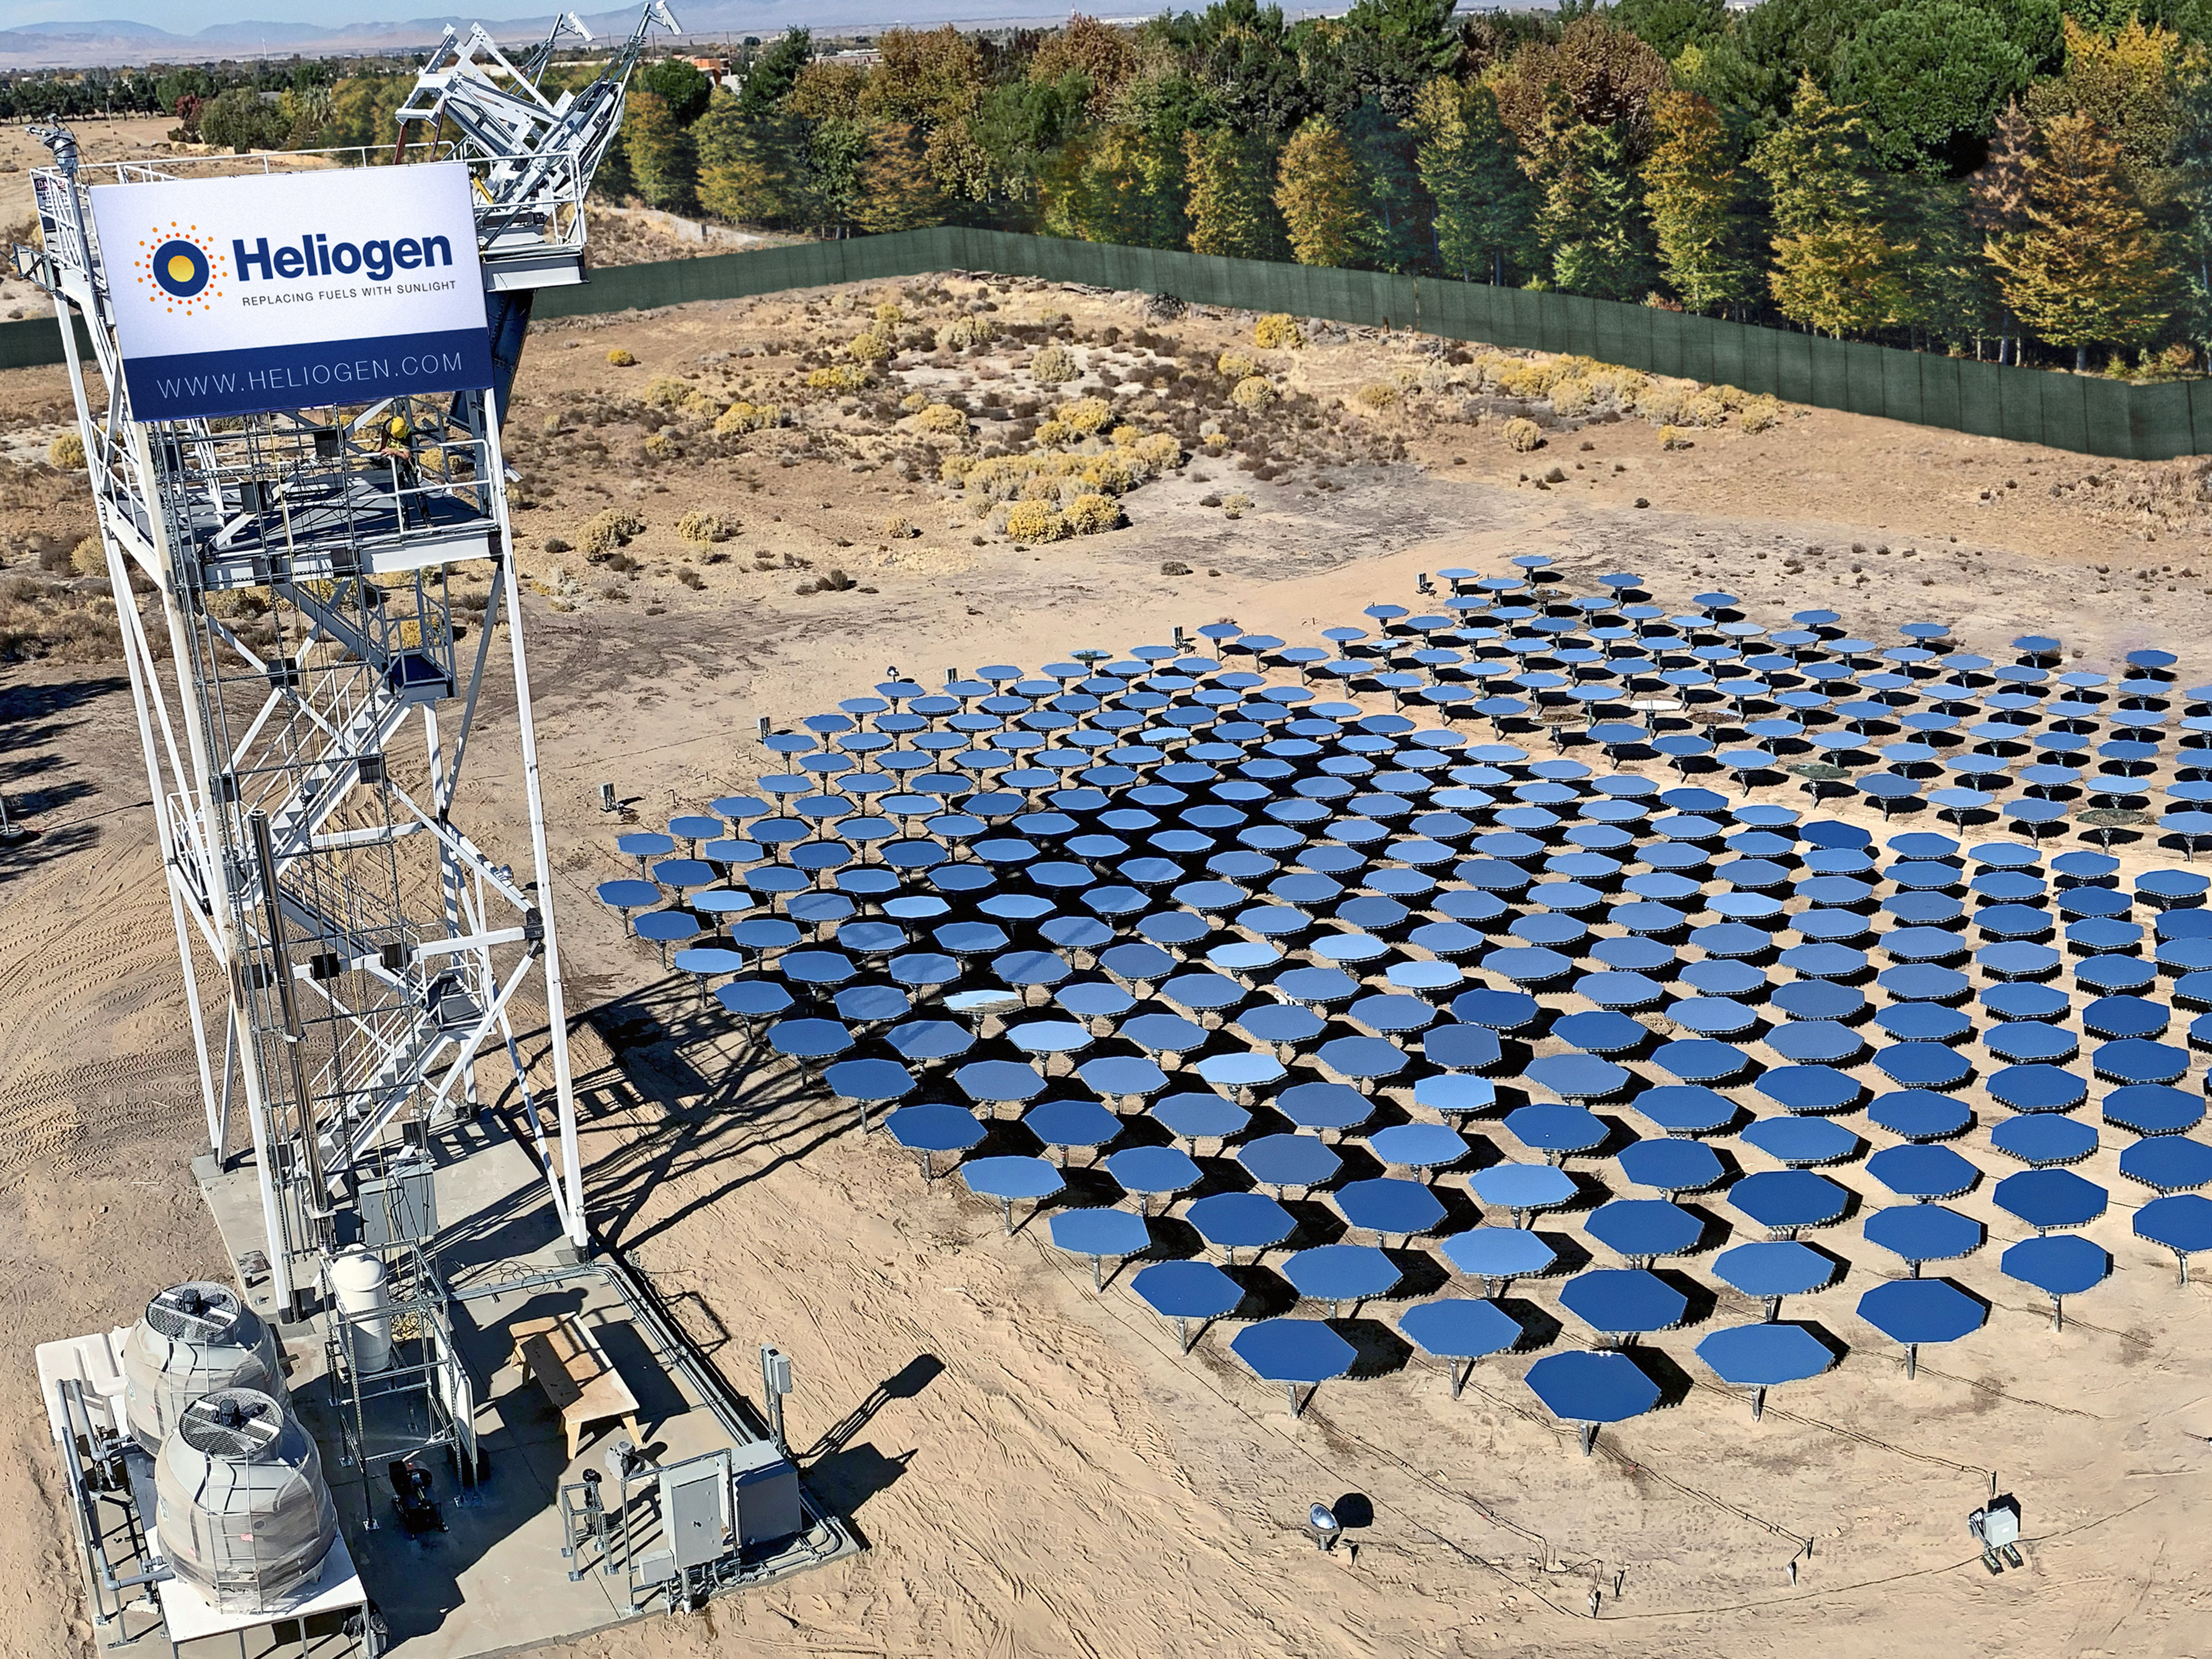 A clever new solar solution to one of the trickiest climate problems